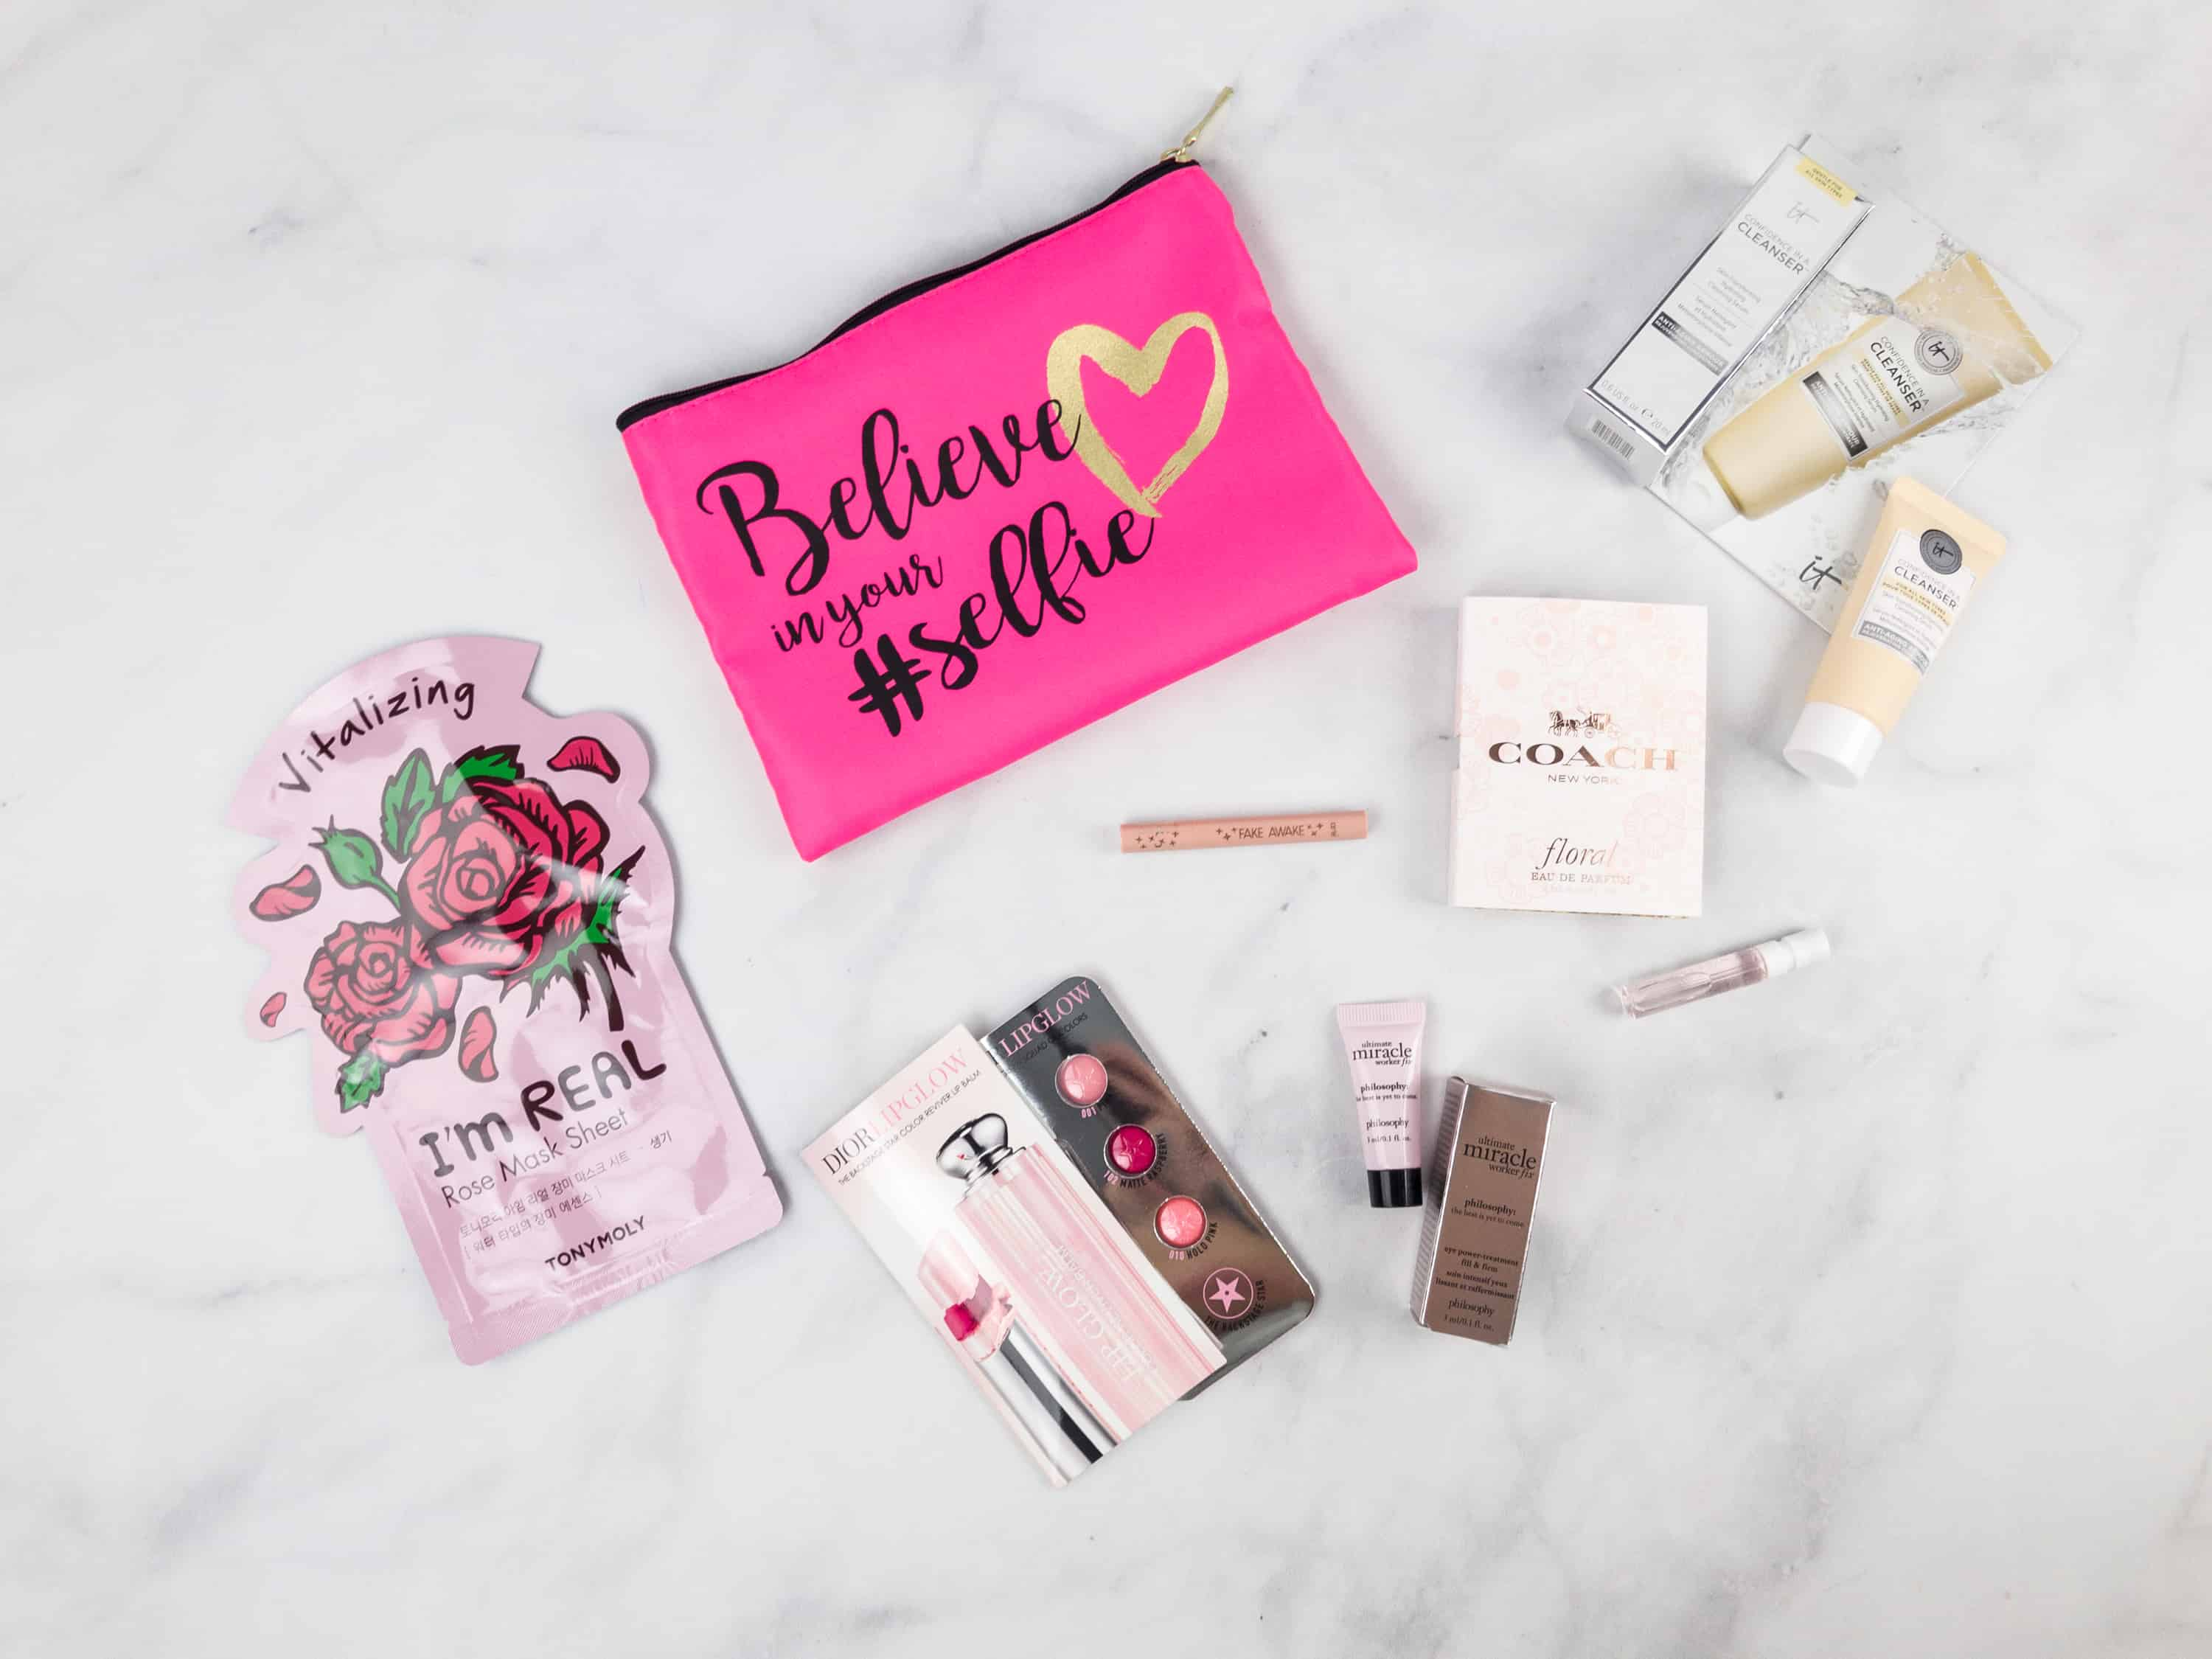 Macy's Beauty Box February 2018 Subscription Box Review